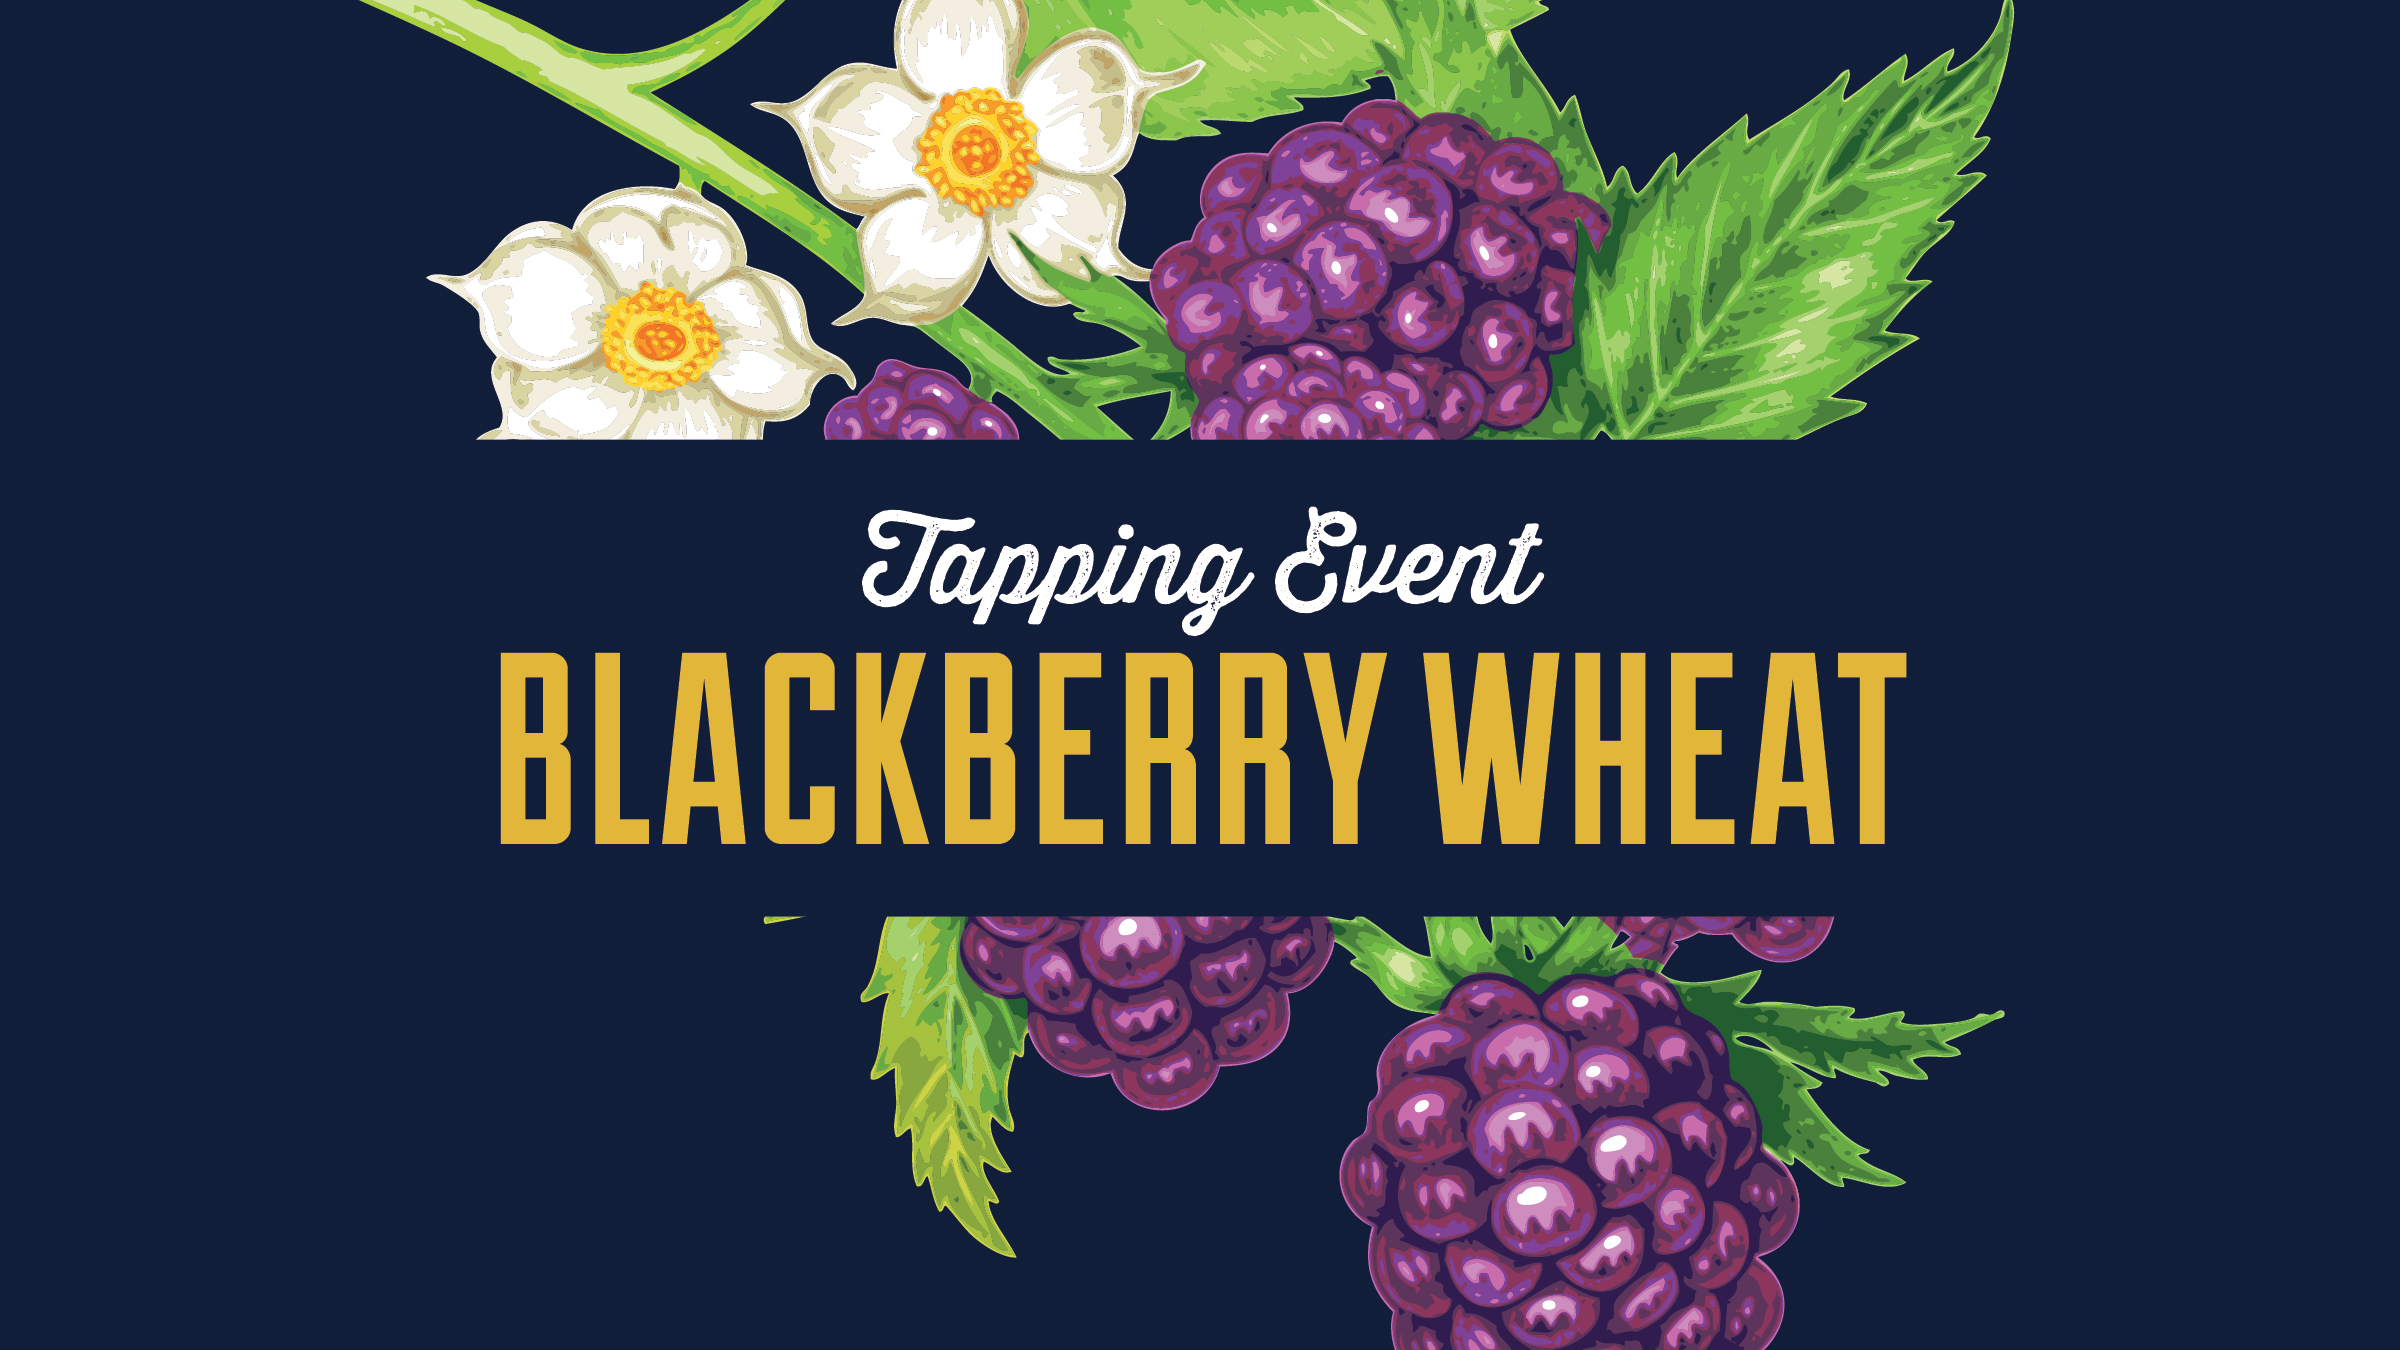 After it's winter hibernation, Blackberry Wheat is returning to the taproom! Bursting with flavors of fresh berries straight from the vine, we use over 200 pounds of Oregon Marionberries per batch to craft this best selling beer that's only available in our Bloomington taproom!